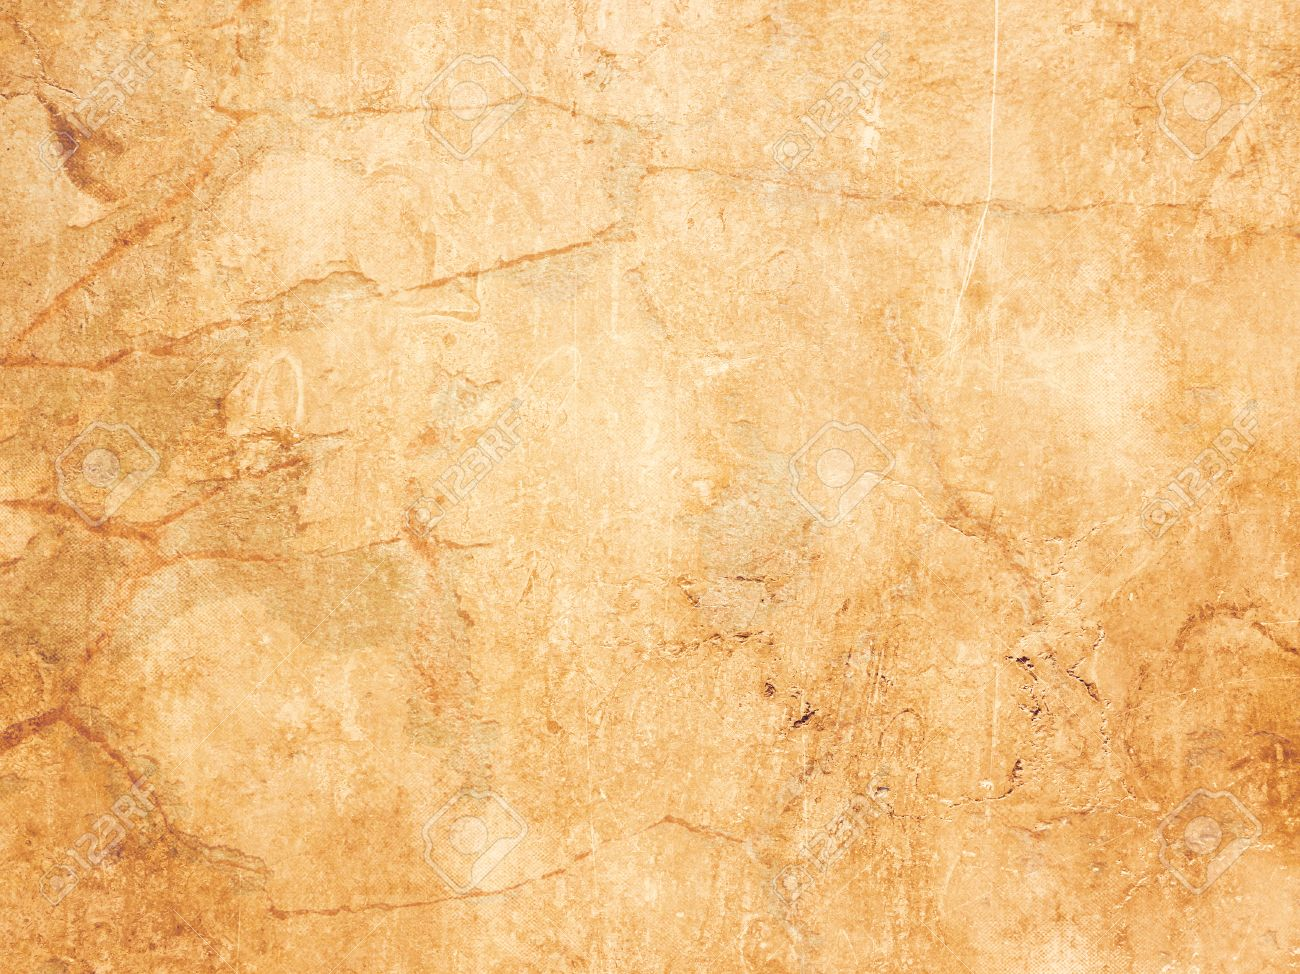 Brown Background High Quality Image All White Background 1300x974